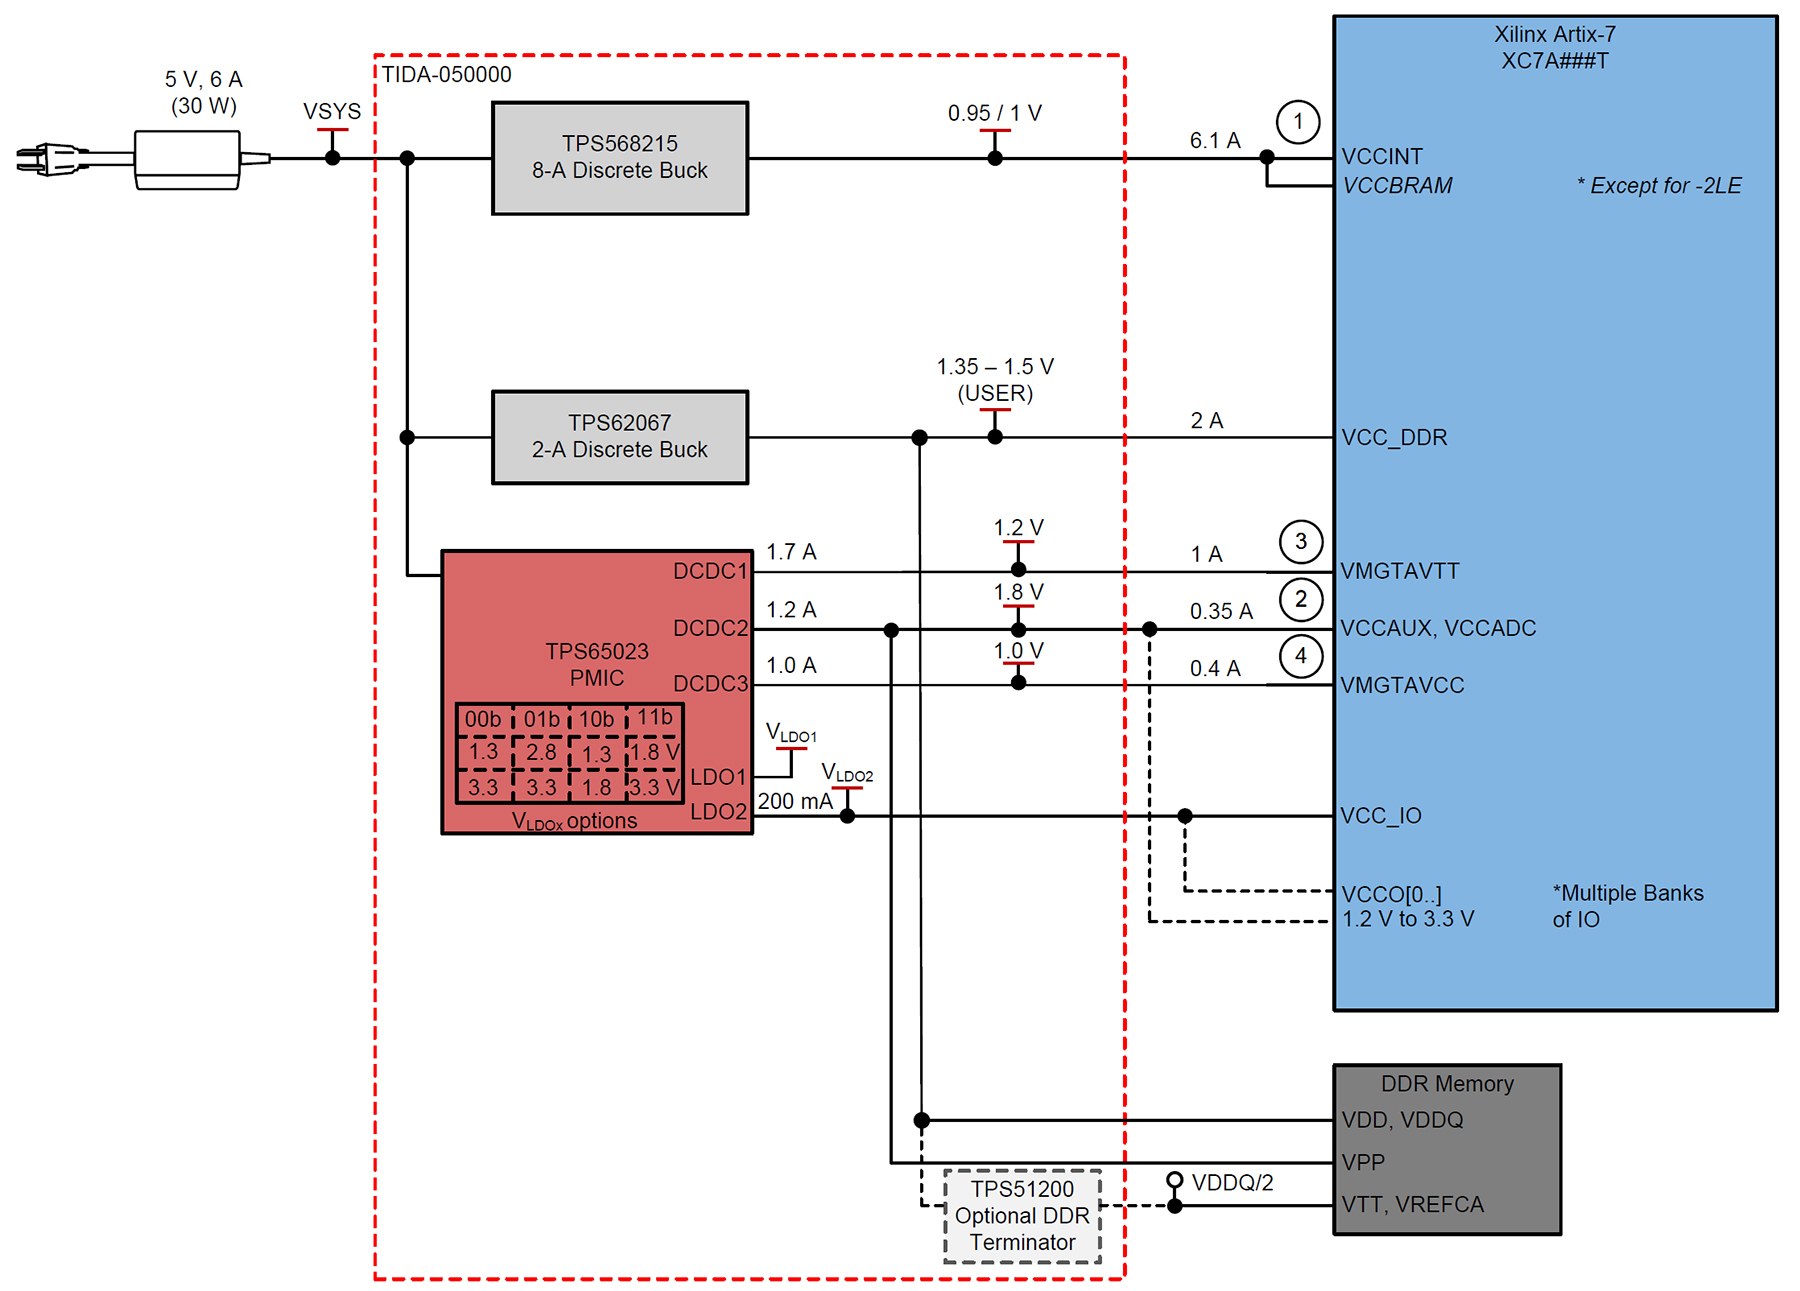 hight resolution of figure 2 xilinx artix 7 spartan 7 and zynq 7000 fpgas